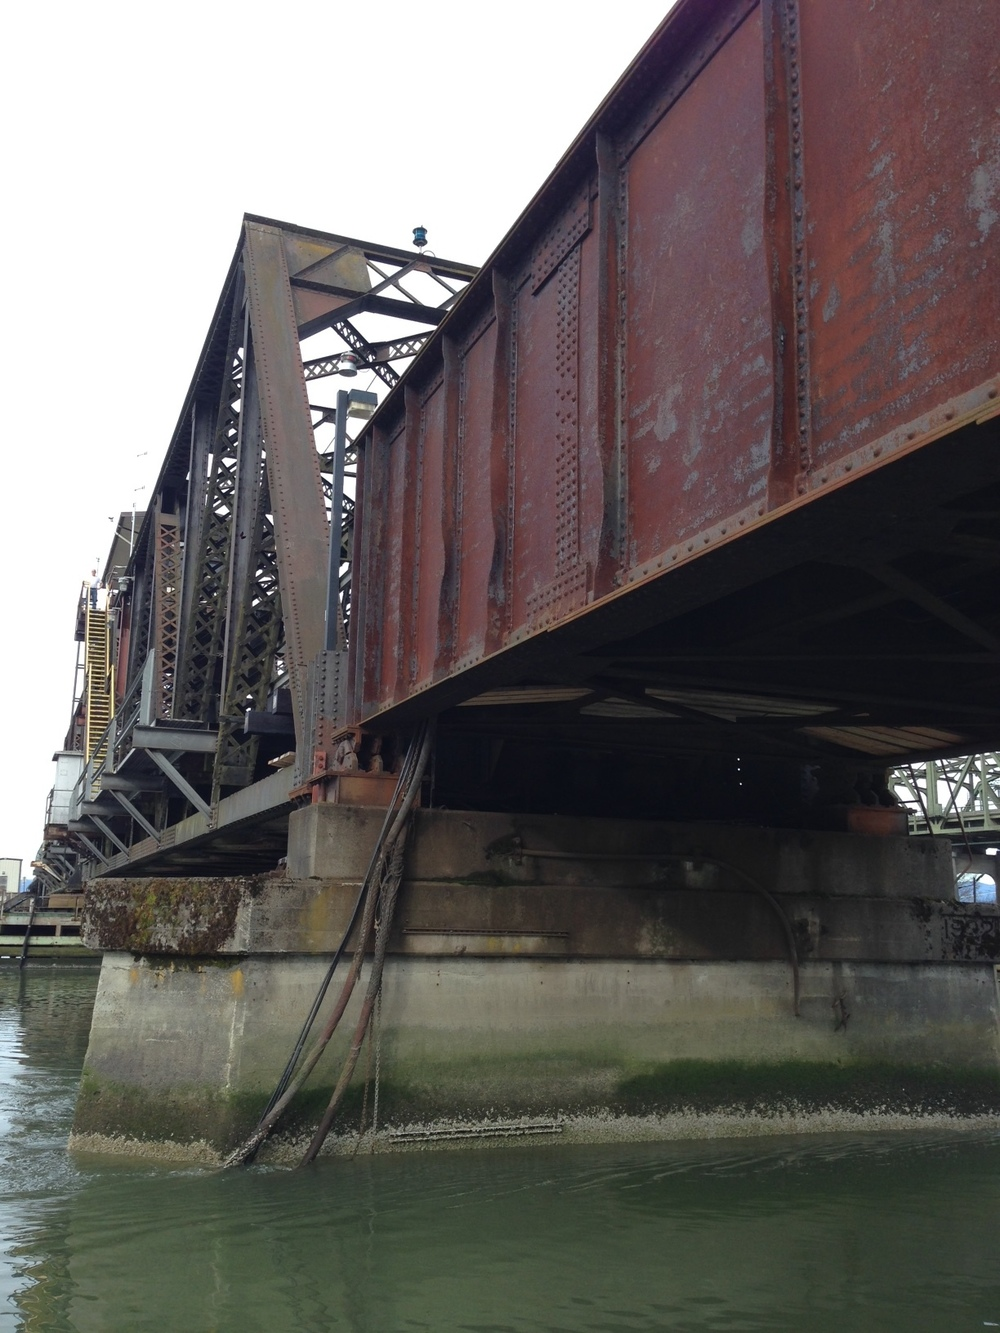 Passing beneath the railroad bridge, which must be done at low tide so as not to scrape the top of your boat.